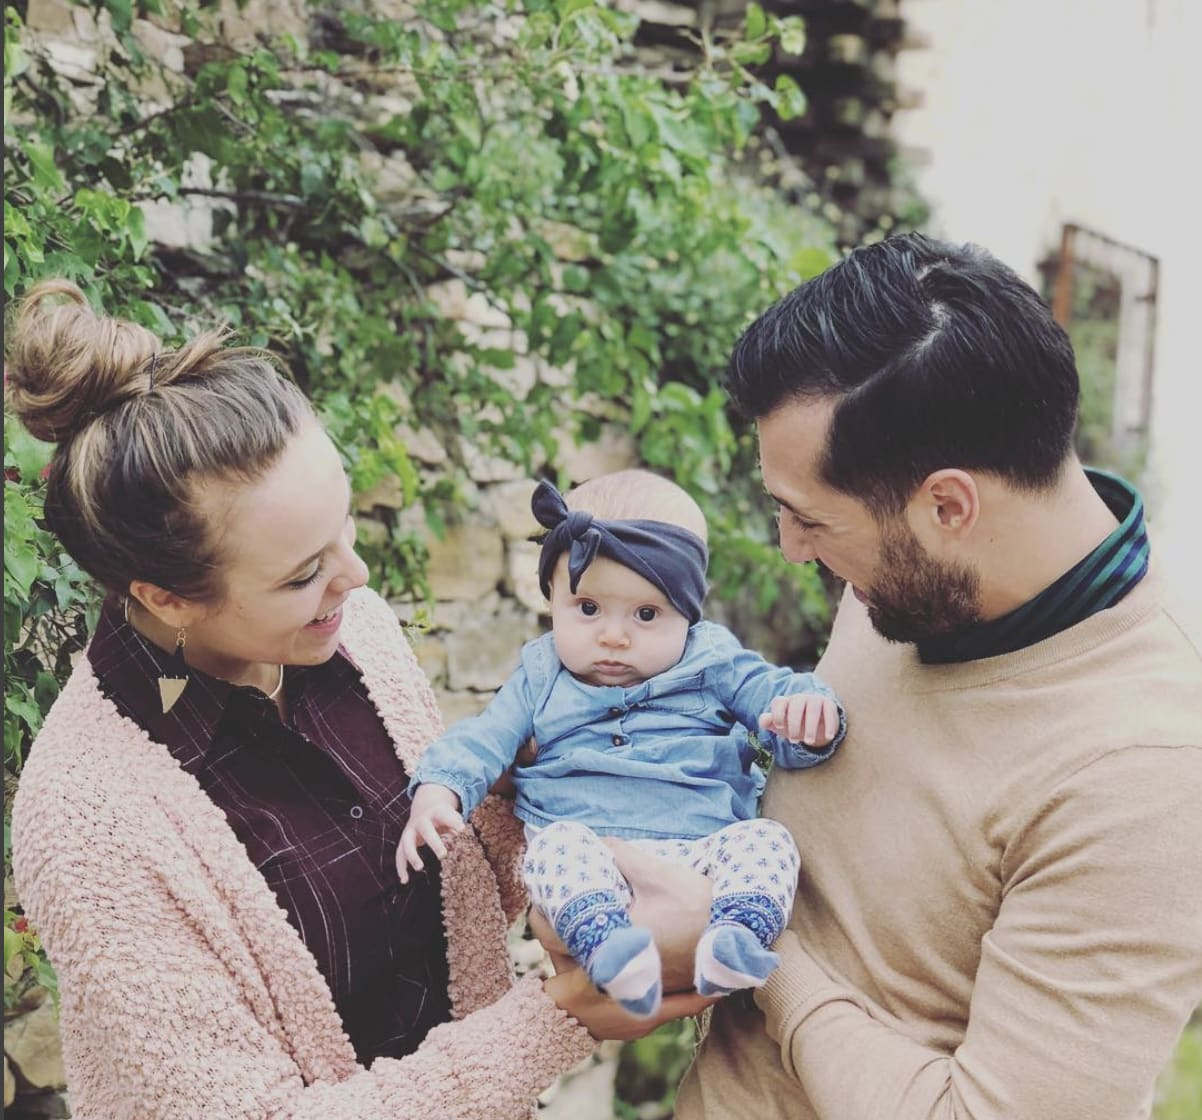 40a841d09 Jinger Duggar Shares Sweetest Pic of Bundled Baby Felicity - The ...